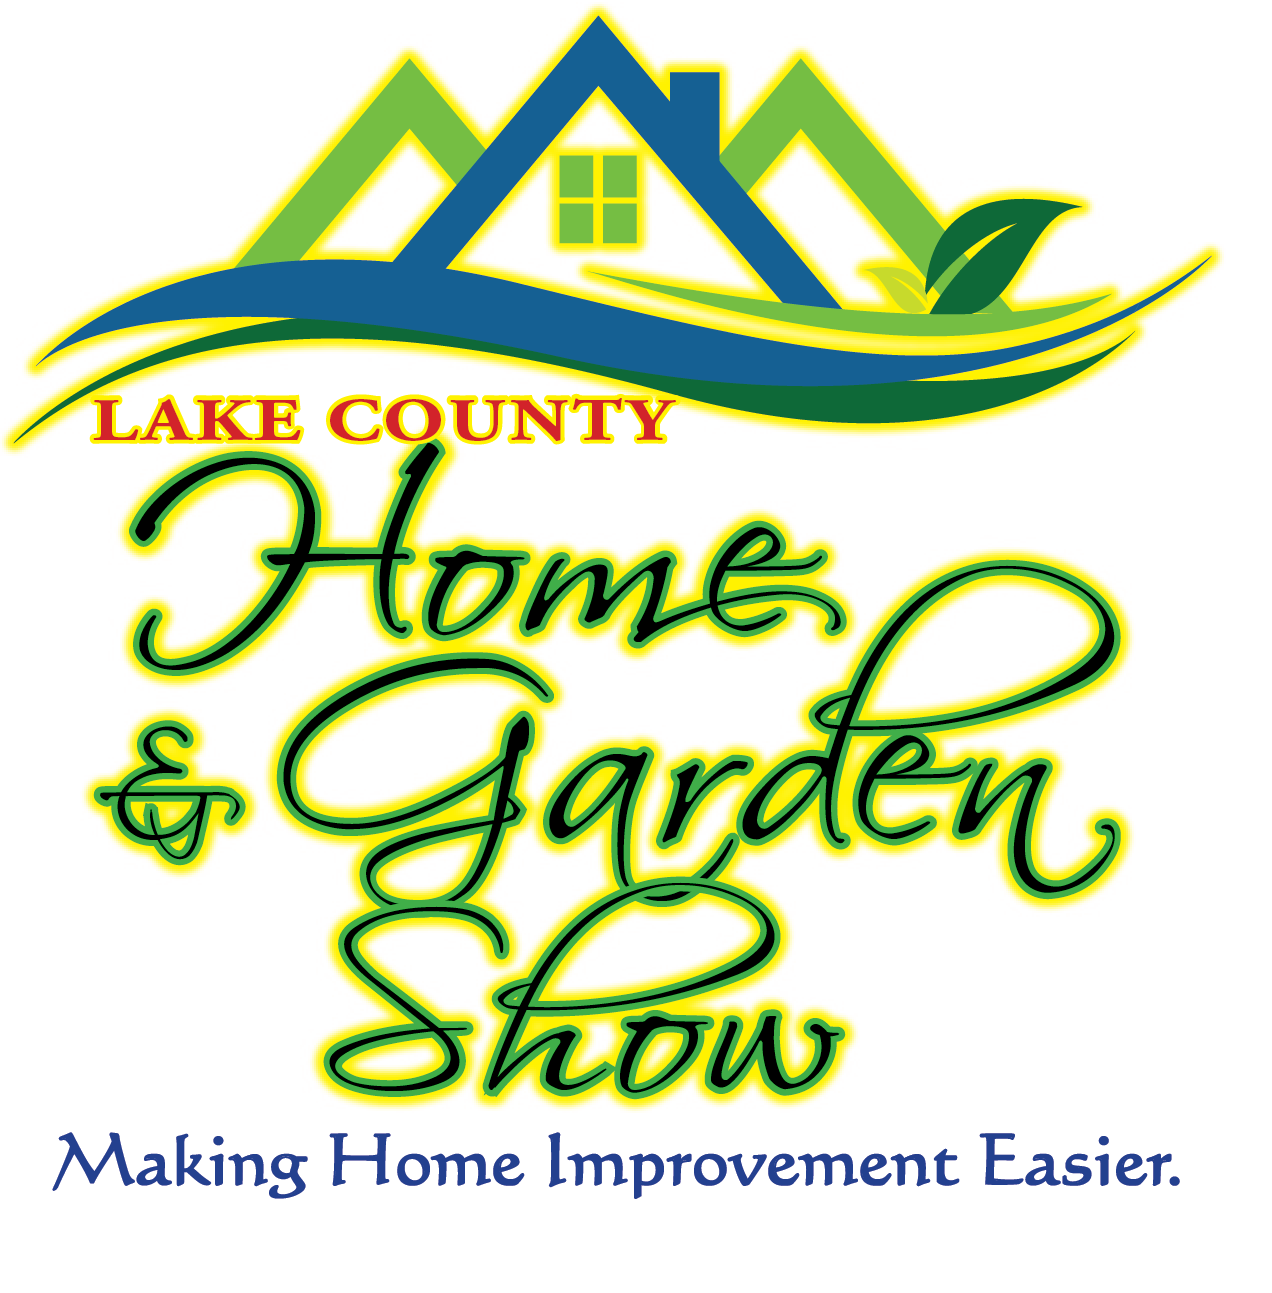 Boston Home Show 2020.Lake County Home Show October 19 20 At The Lake County